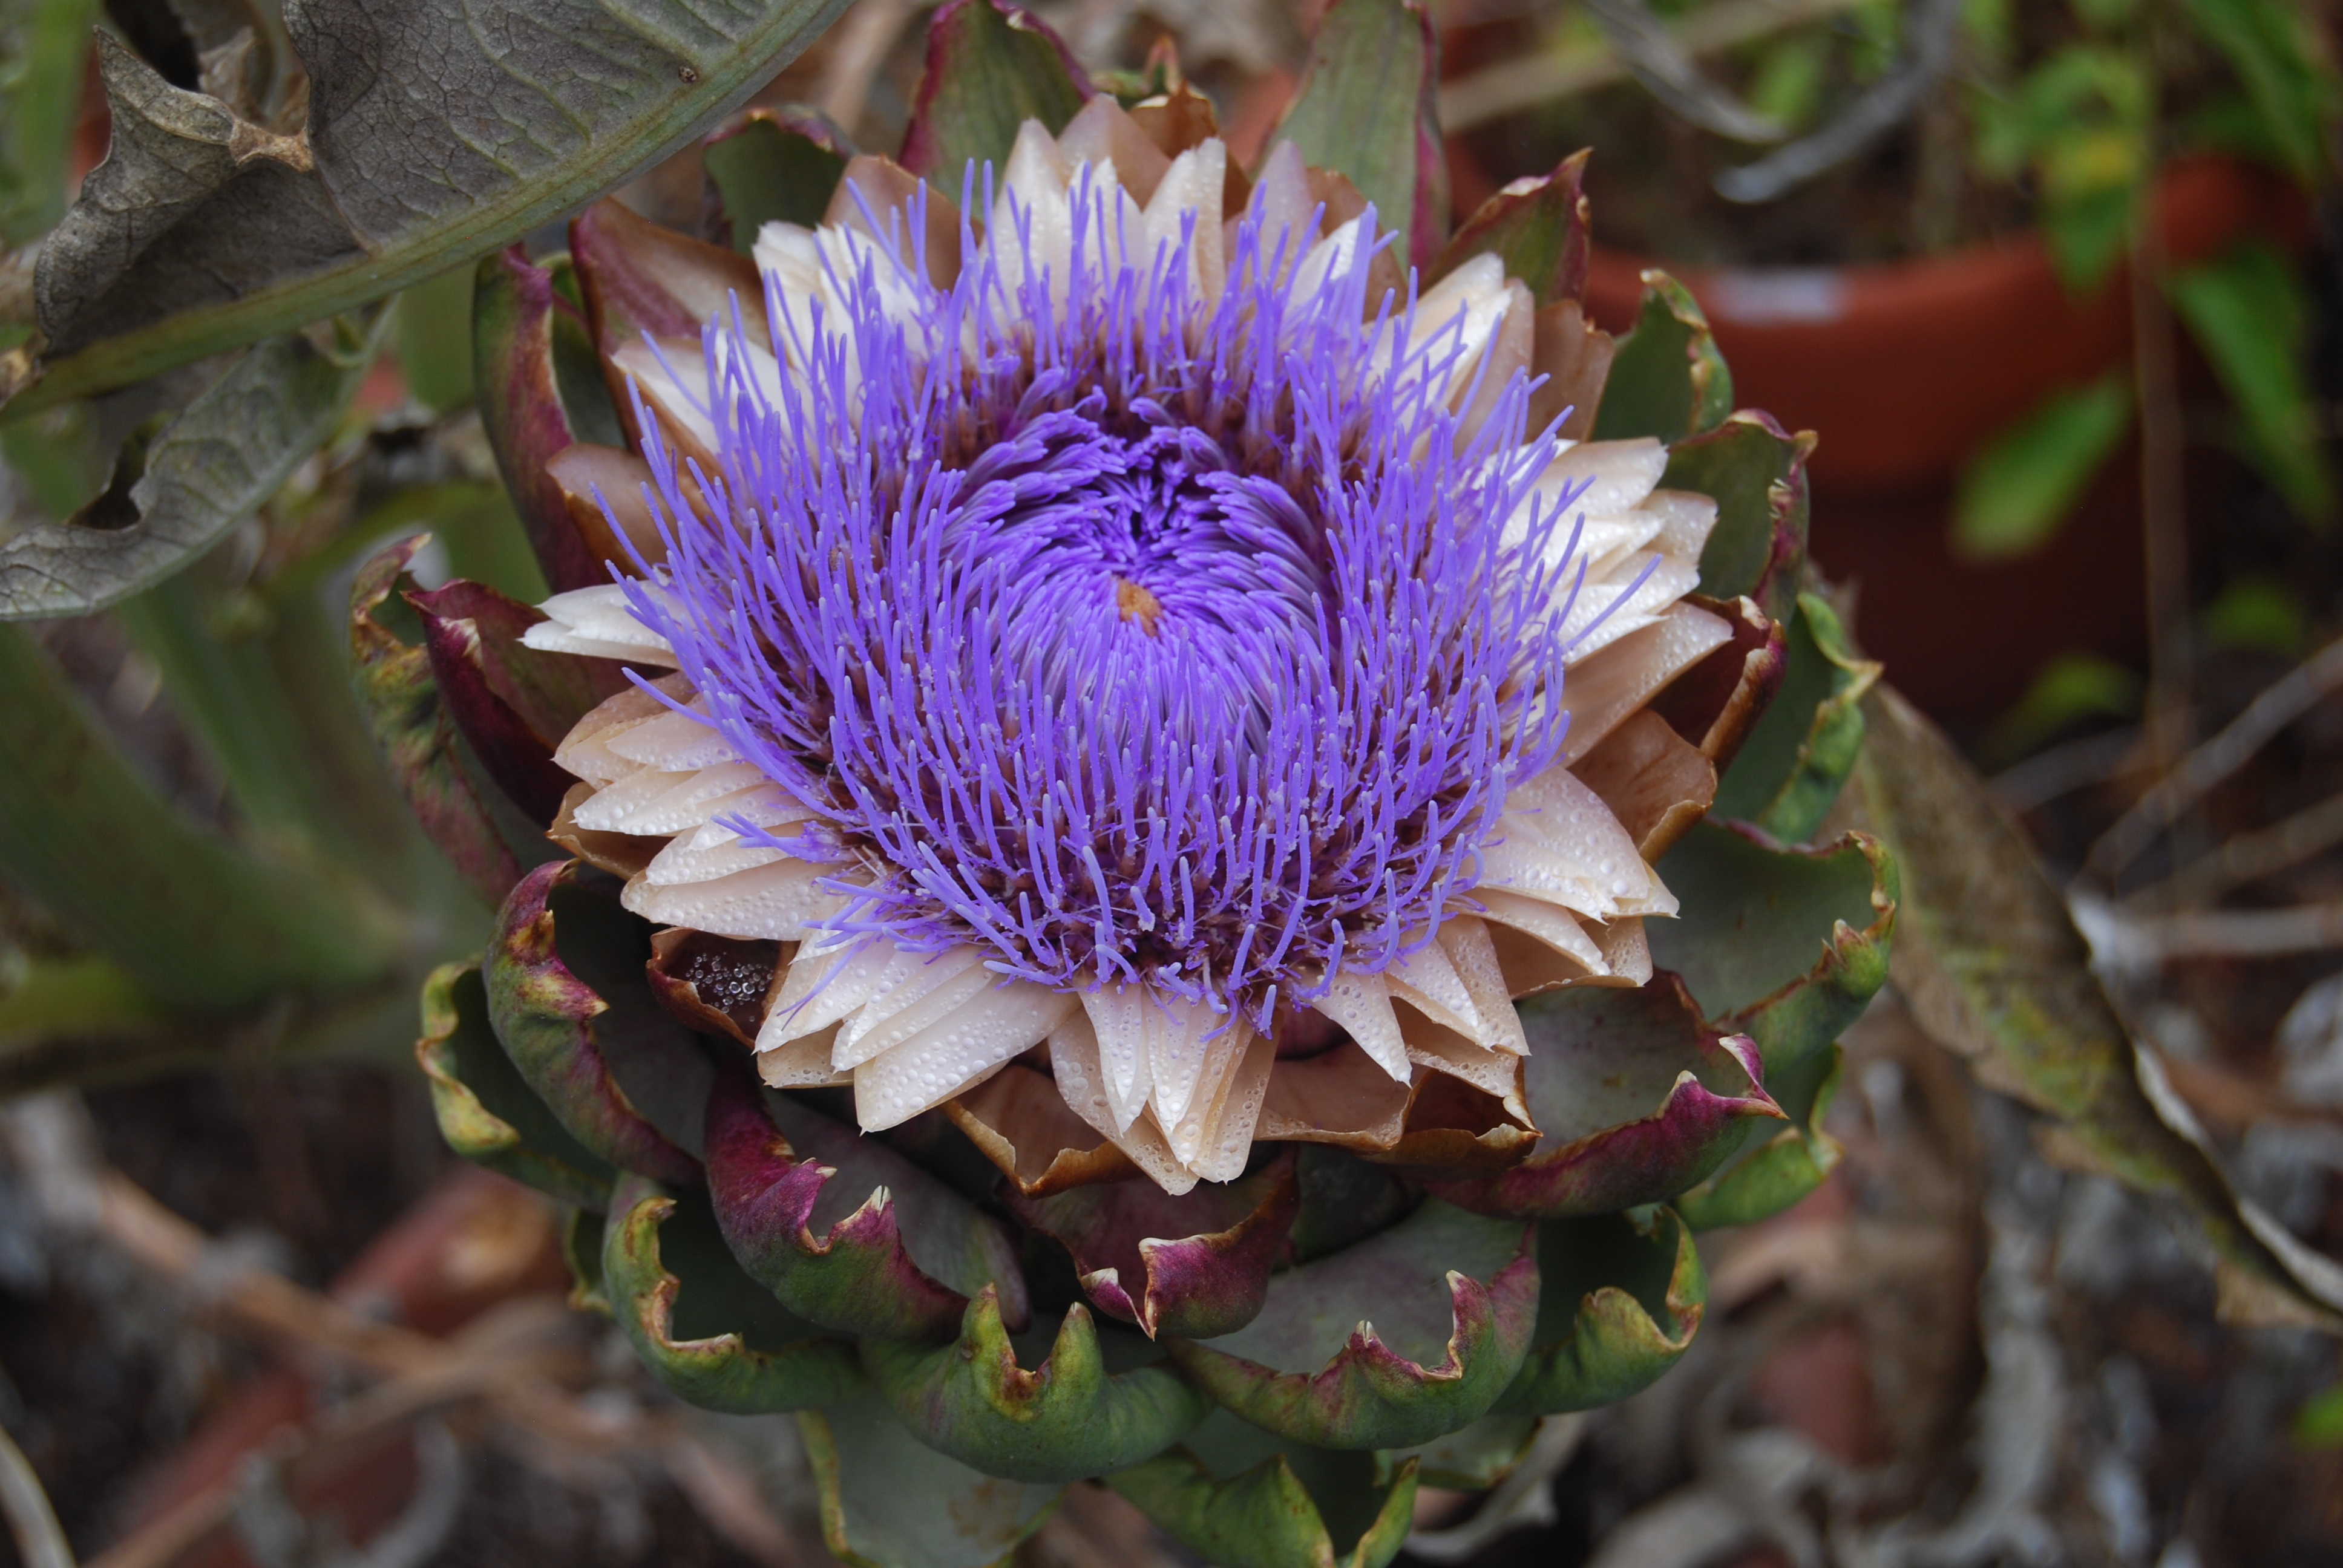 Let artichokes go to flower. We'll save seeds from this Winnetka Purple artichoke for the Seed Library of Los Angeles.